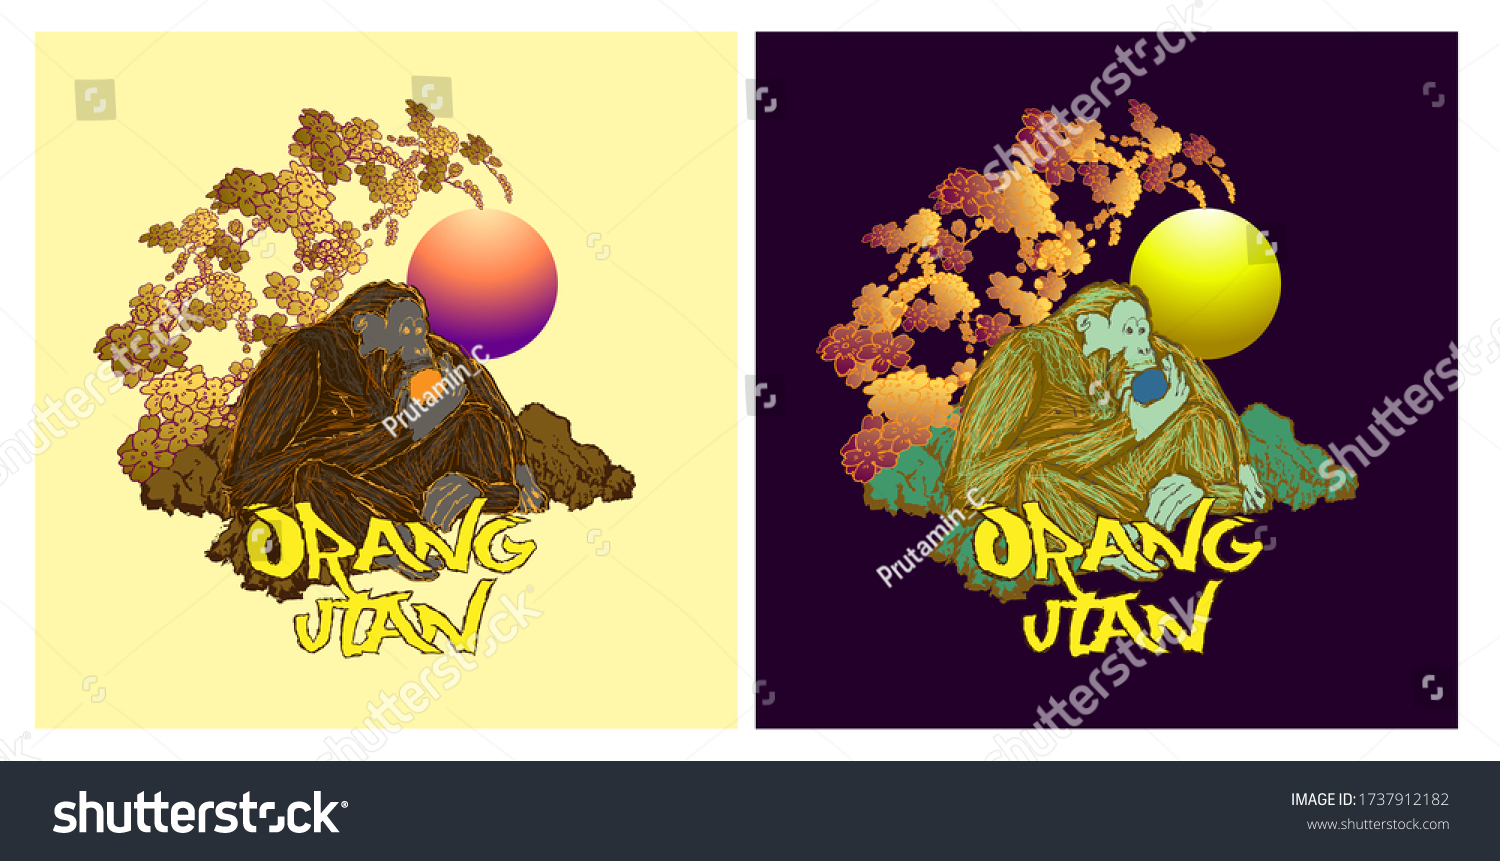 orangutan or indonesia's apes illustration design for sukajan is mean japan traditional cloth or t-shirt with digital hand drawn